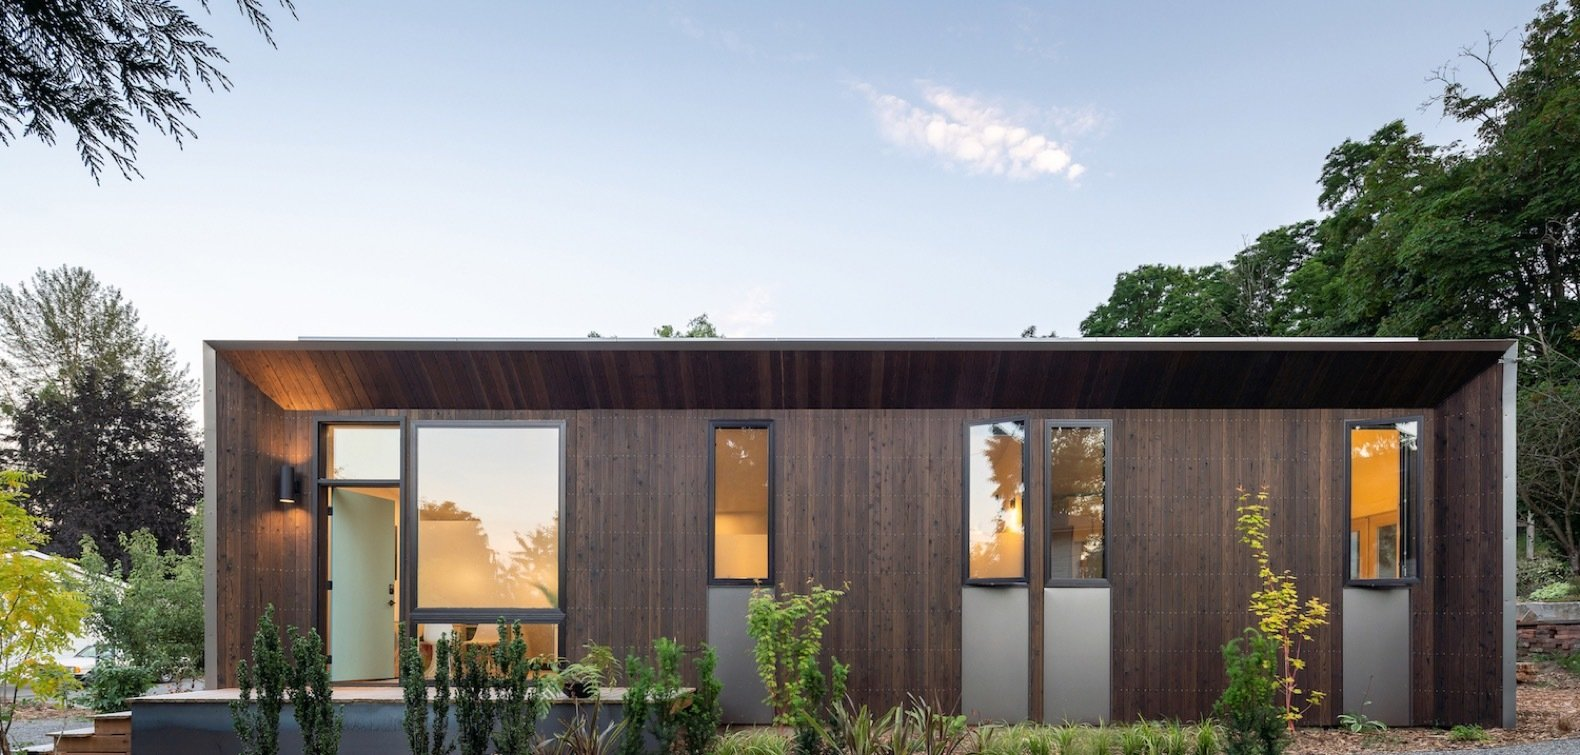 These 5 Companies Want To Build A Tiny House In Your Backyard For Free Dwell